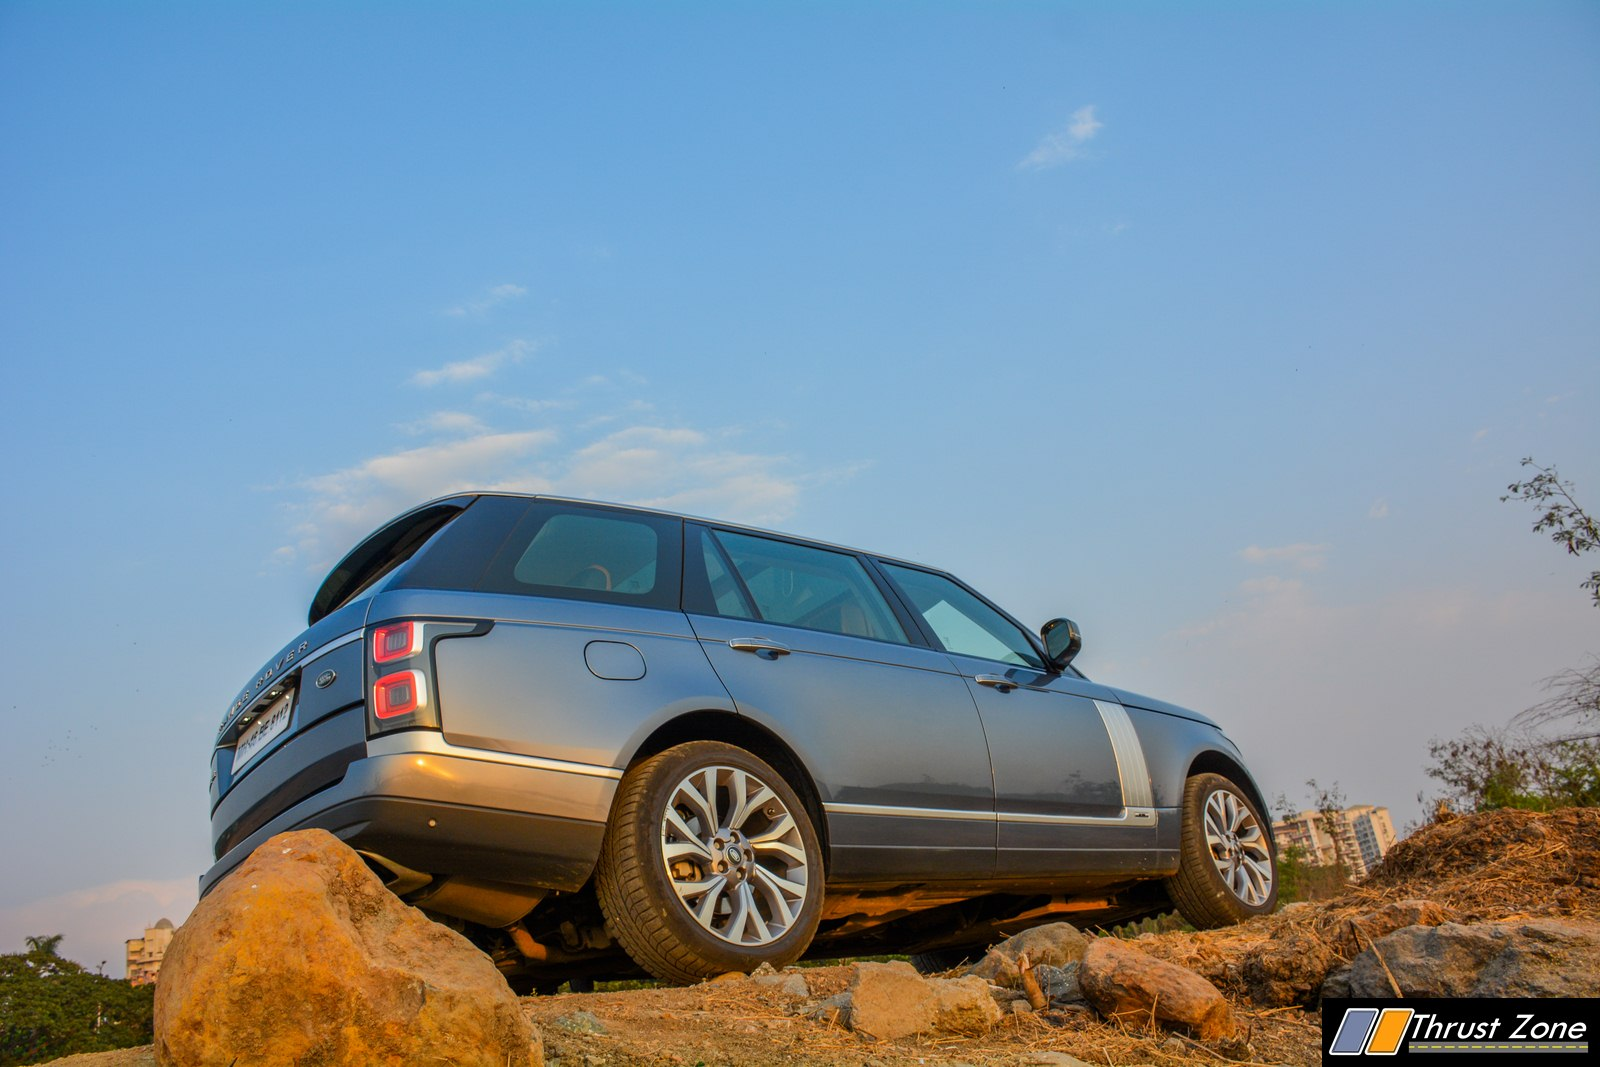 https://www.thrustzone.com/wp-content/uploads/2019/05/2019-Range-Rover-India-Diesel-V6-Review-31.jpg